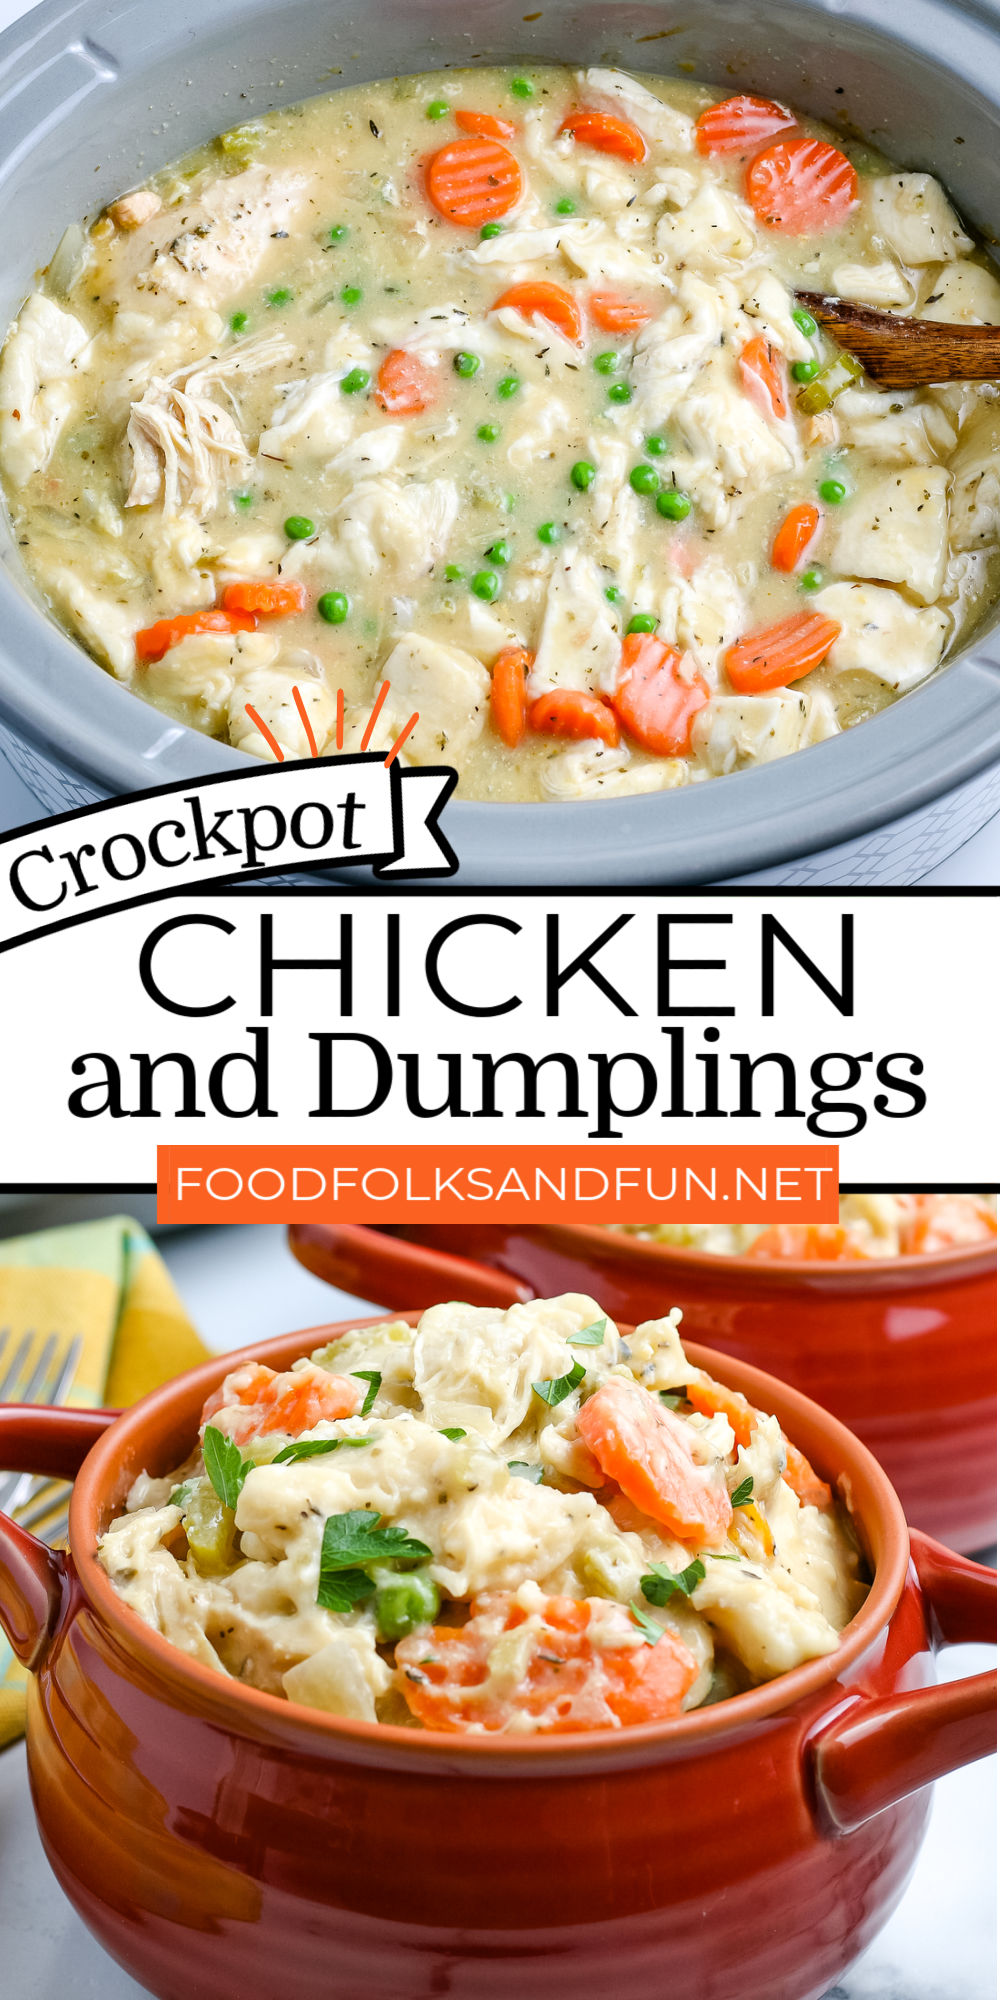 This Easy Crockpot Chicken and Dumplings recipe is made with pantry ingredients and canned biscuits for an effortless weeknight dinner or Sunday supper. via @foodfolksandfun